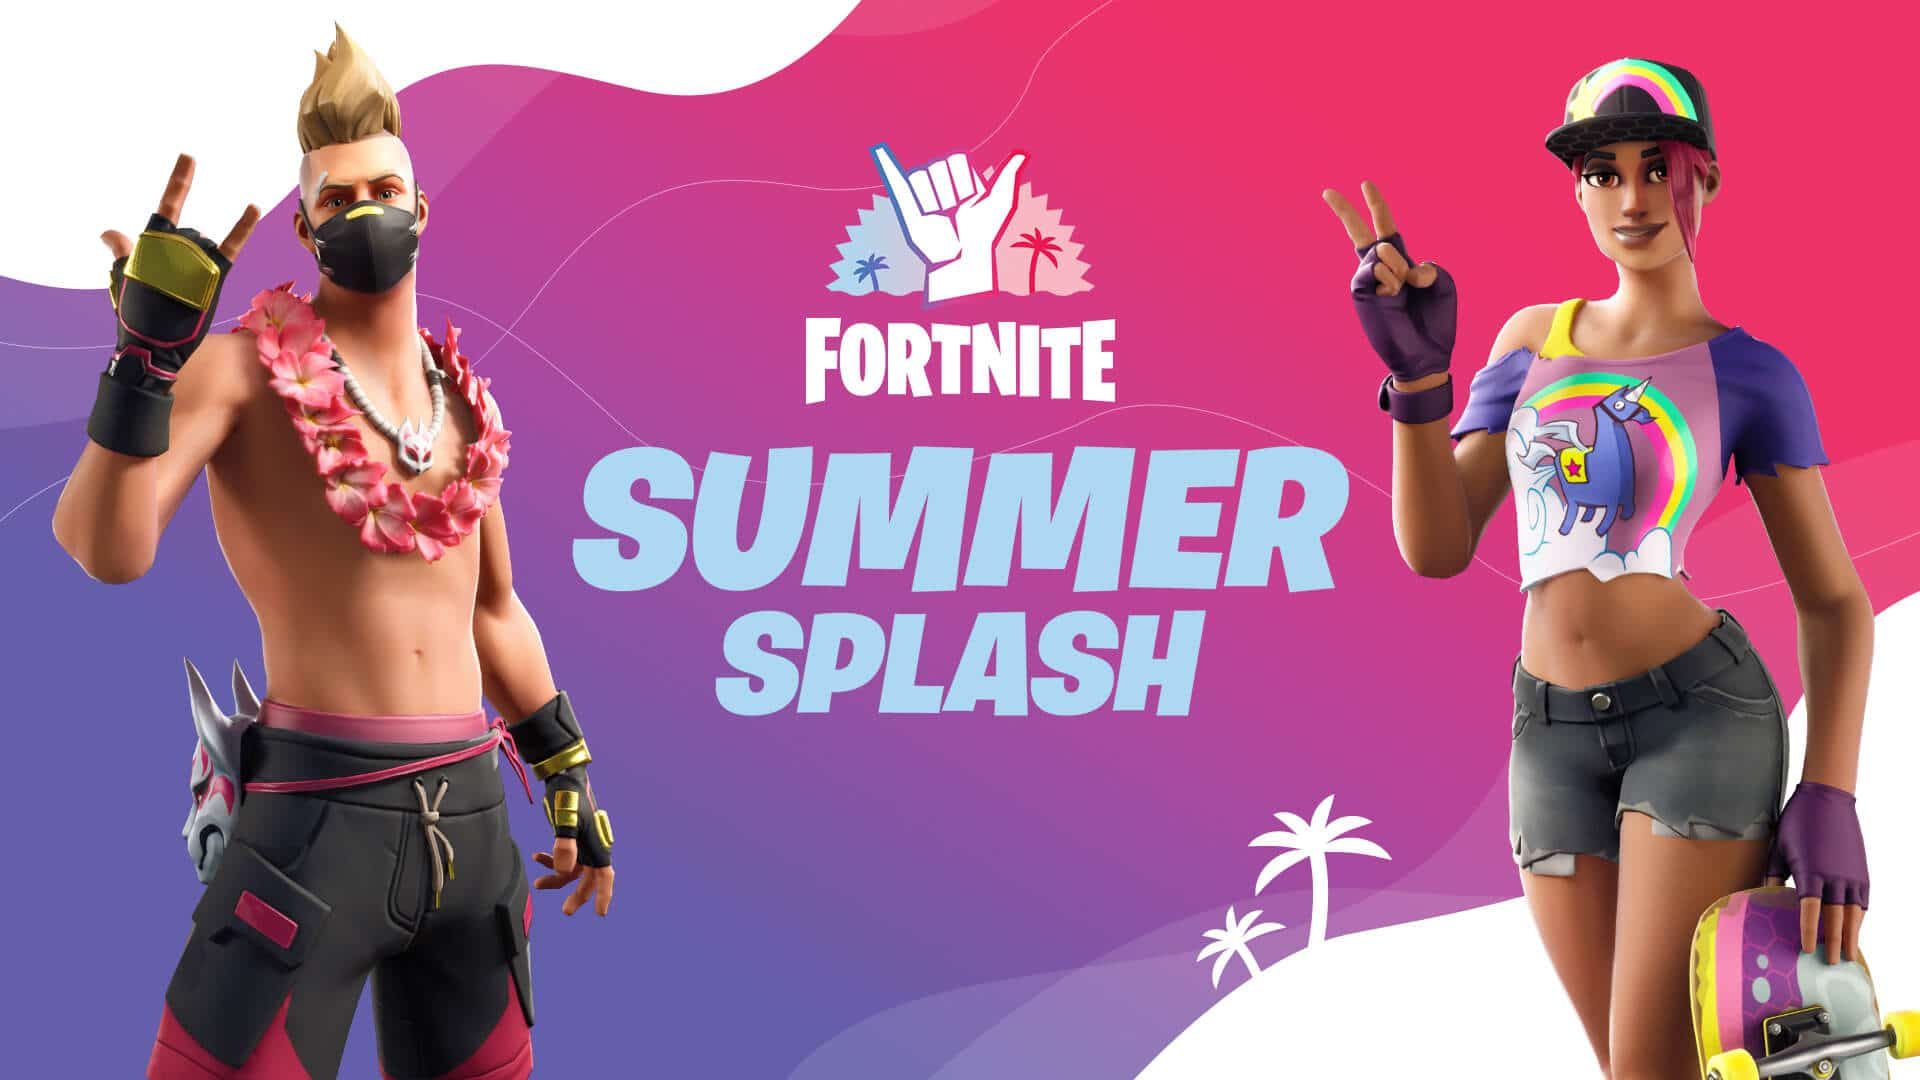 Fortnite Summer Splash 2020 - Summer Drift and Beach Bomber